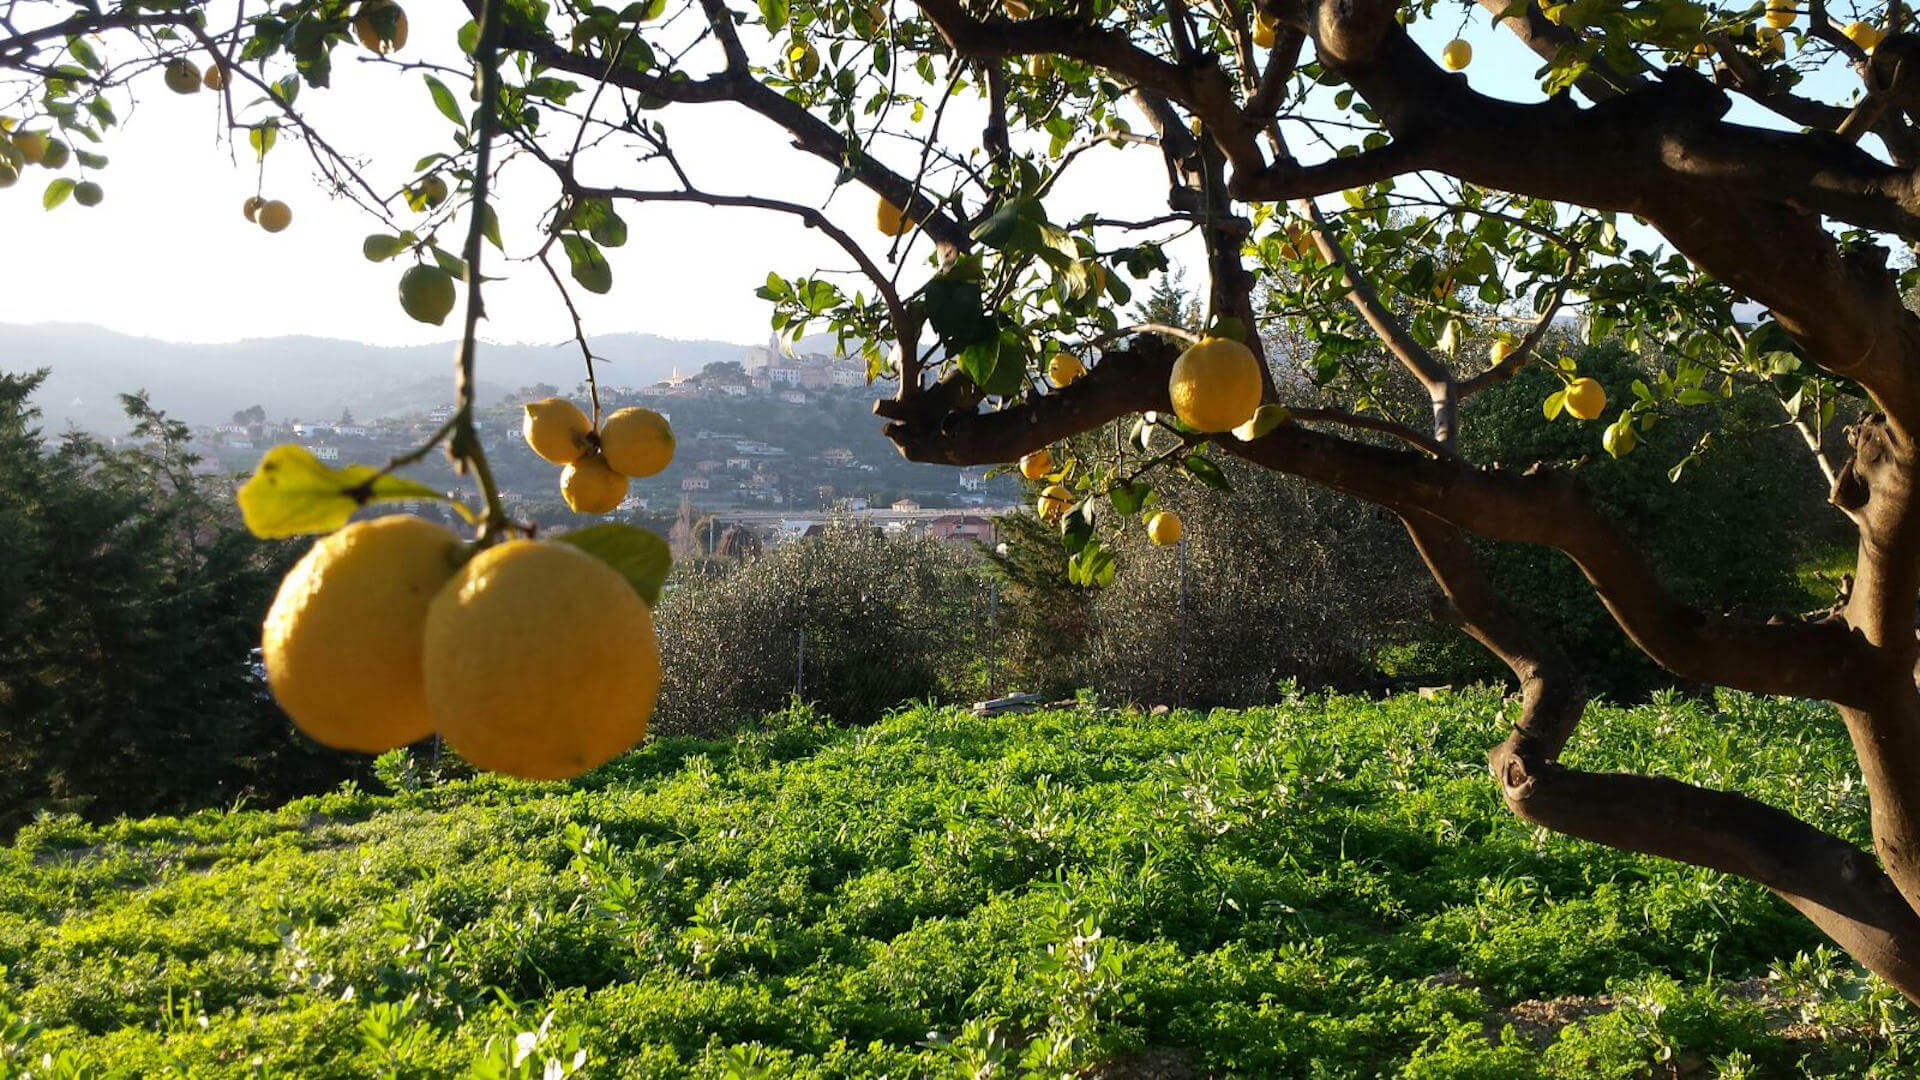 How the lemons are grown in our farm